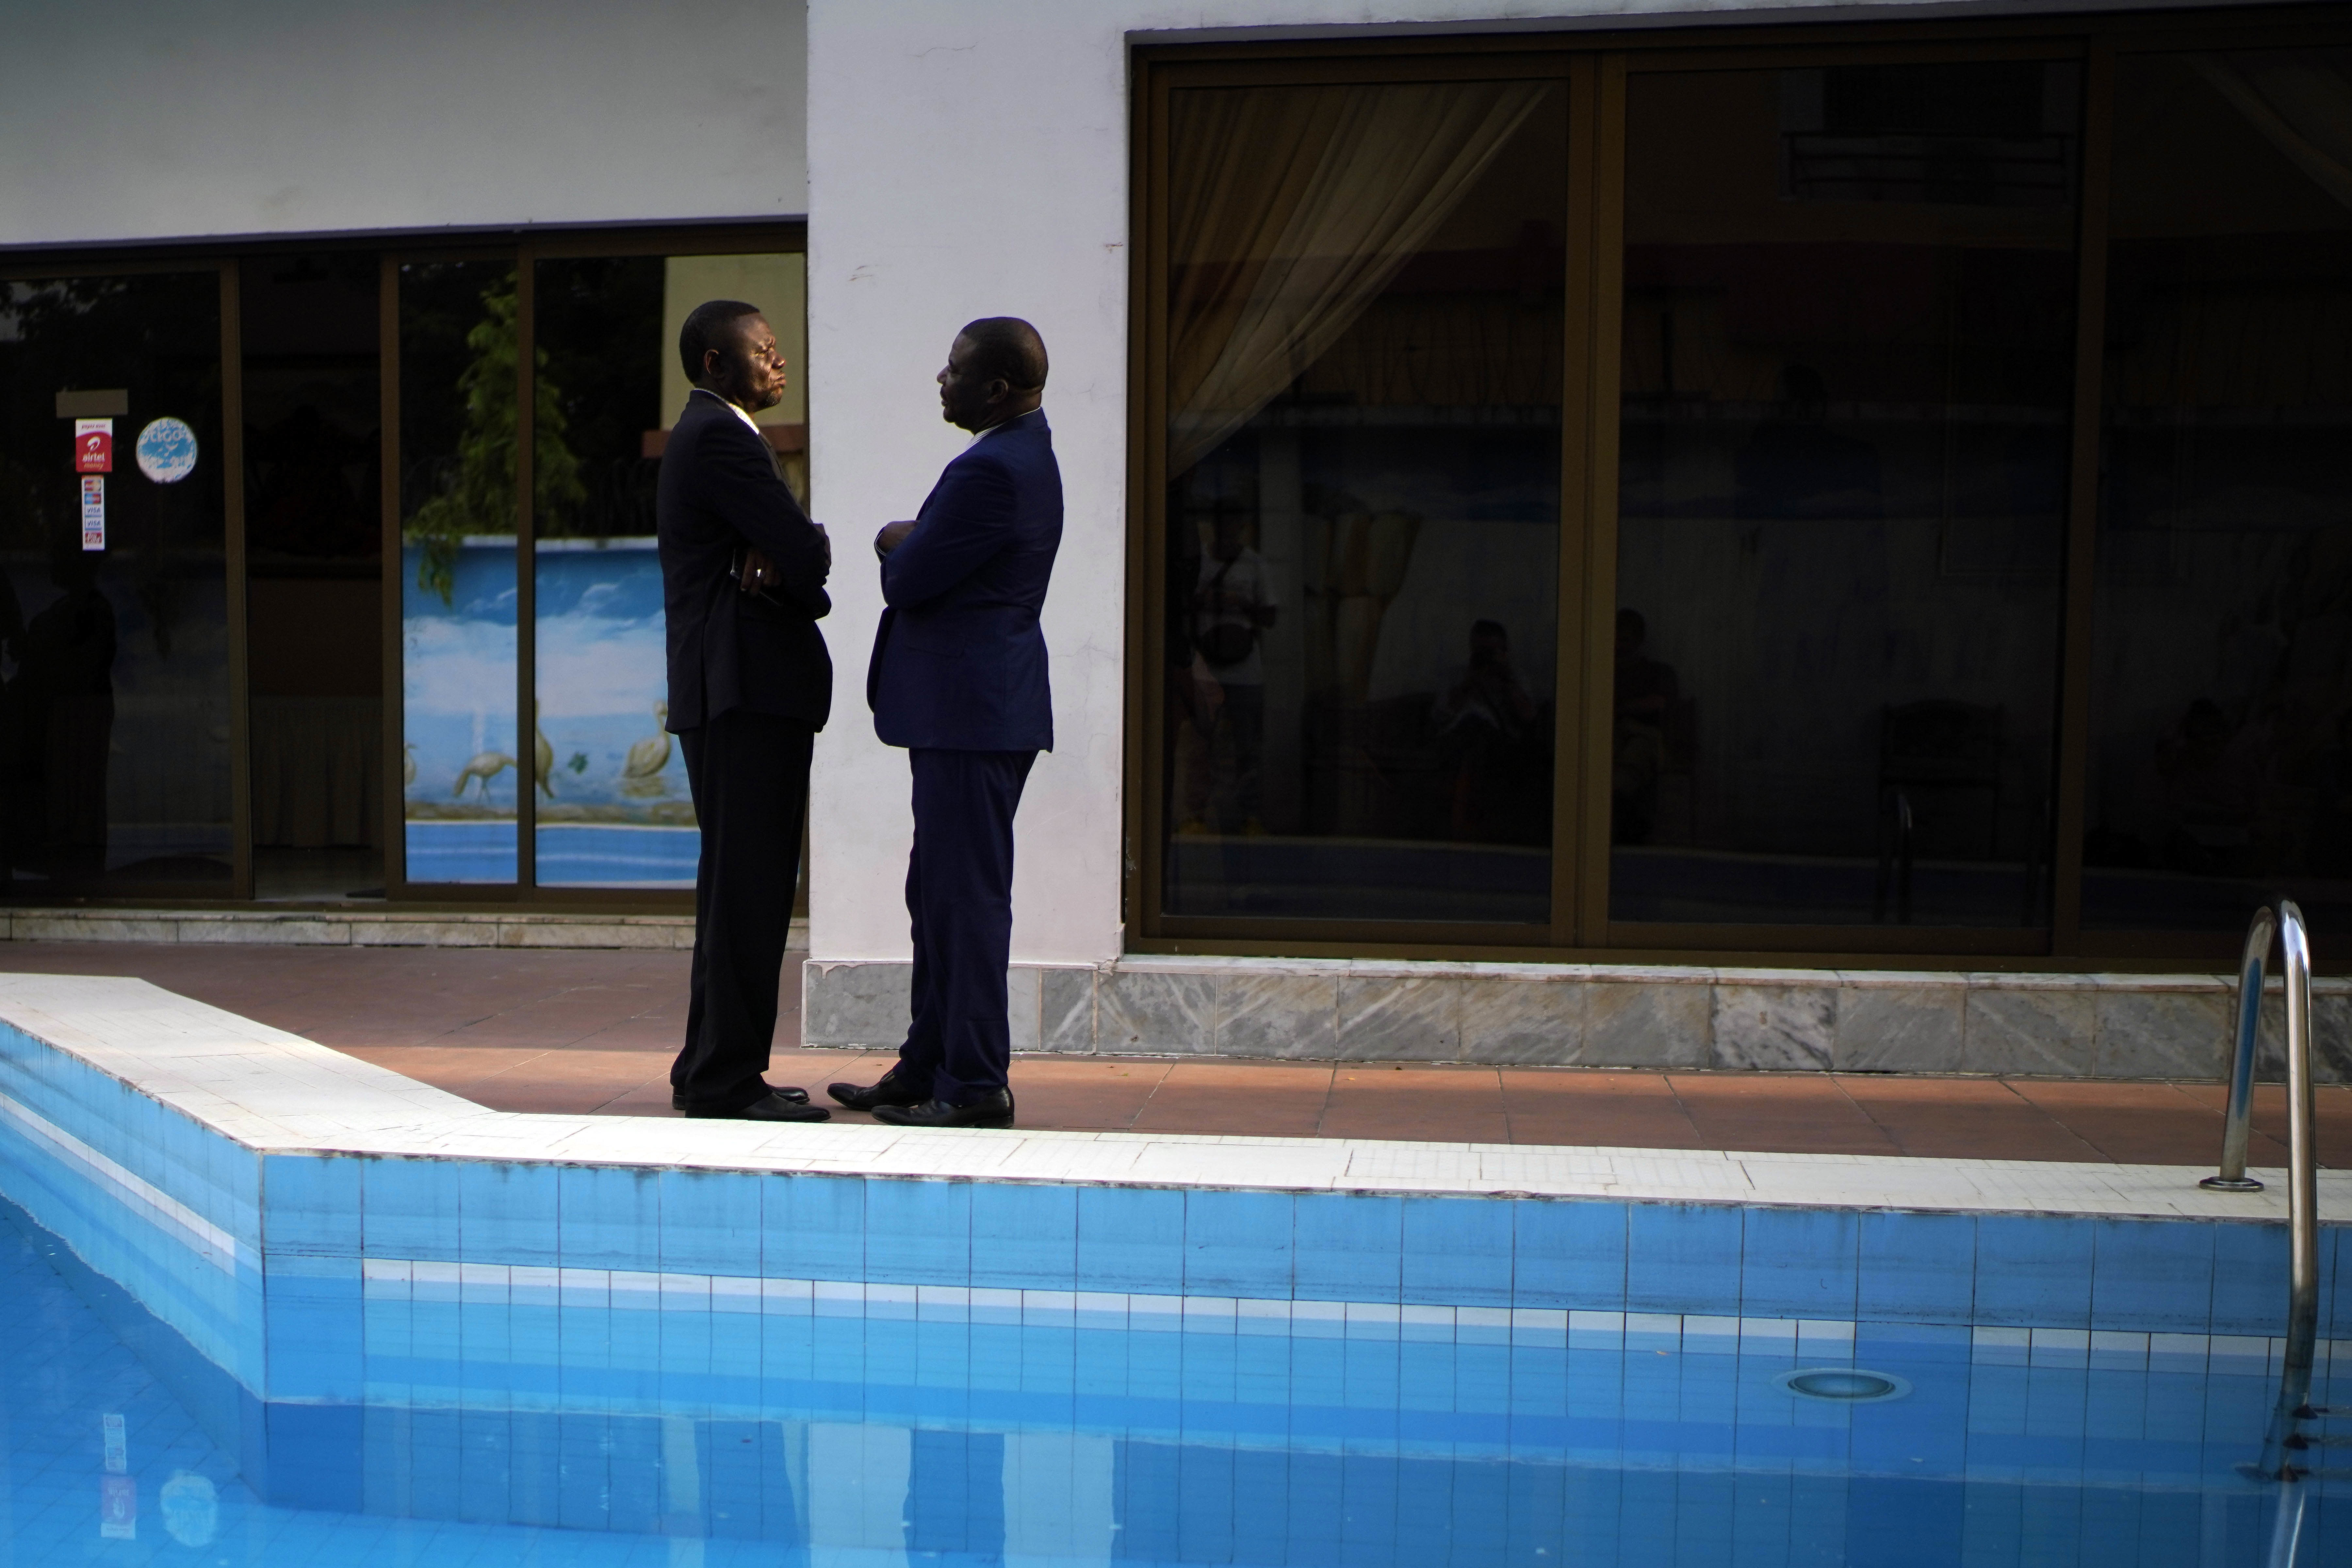 Members of the Congolese opposition coalition Lamuka, led by presidential candidate Martin Faluyu, have a conversation while waiting for a statement to be issued on the timing of the release of the presidential election results in Kinshasa, Congo, Saturday Jan. 5, 2019. Congo faces what could be its first democratic, peaceful transfer of power since independence from Belgium in 1960, but election observers and the opposition have raised numerous concerns about voting irregularities as the country chooses a successor to longtime President Joseph Kabila. (AP Photo/Jerome Delay)